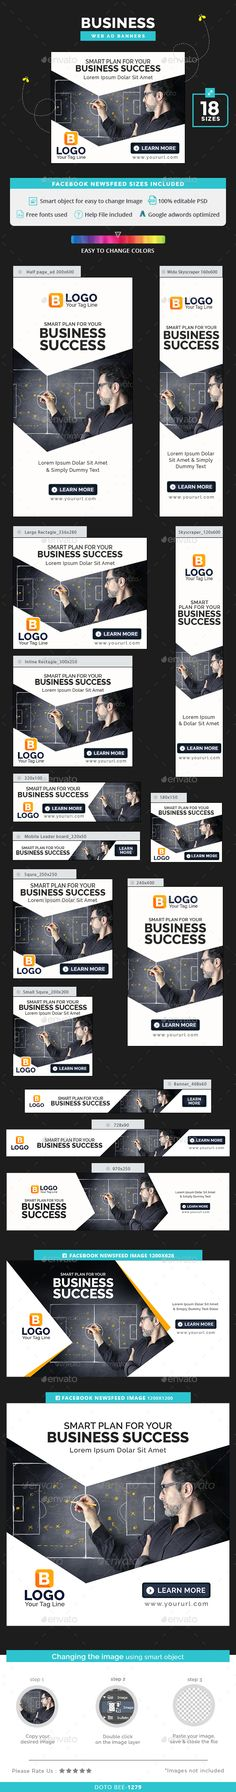 Business Banners Template PSD. Download here: http://graphicriver.net/item/business-banners/16360243?ref=ksioks